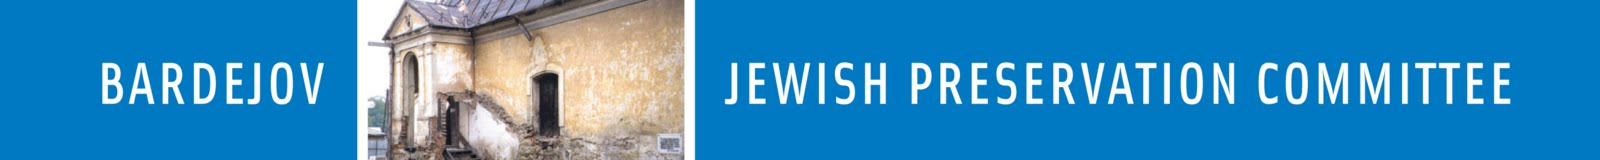 Bardejov Jewish Preservation Committee